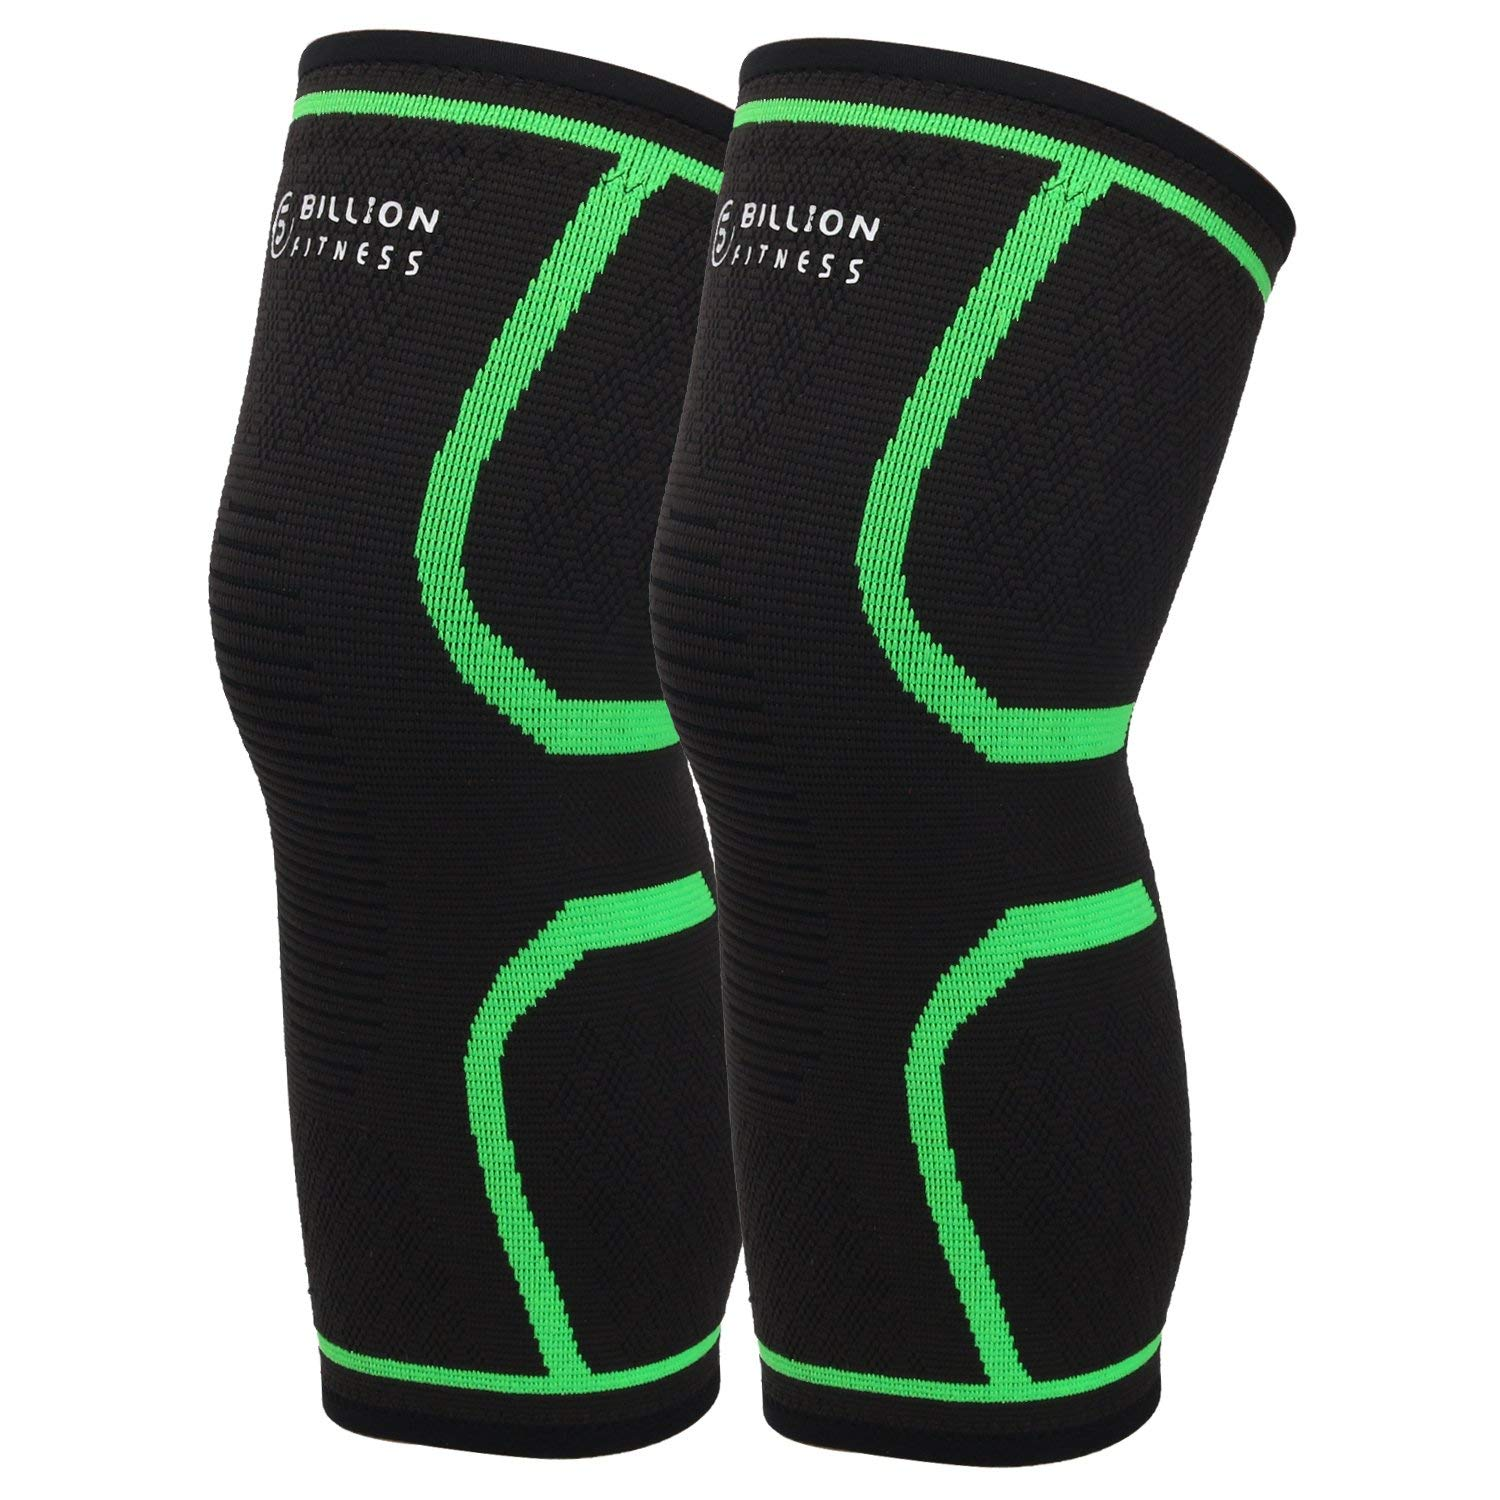 aacd8a7946 5BILLION Knee Sleeve Knee Support Knee Compression Brace for Powerlifting,  Arthritis, Running, Workout, Joint Pain Relief & Cross Training-Both for  Men ...